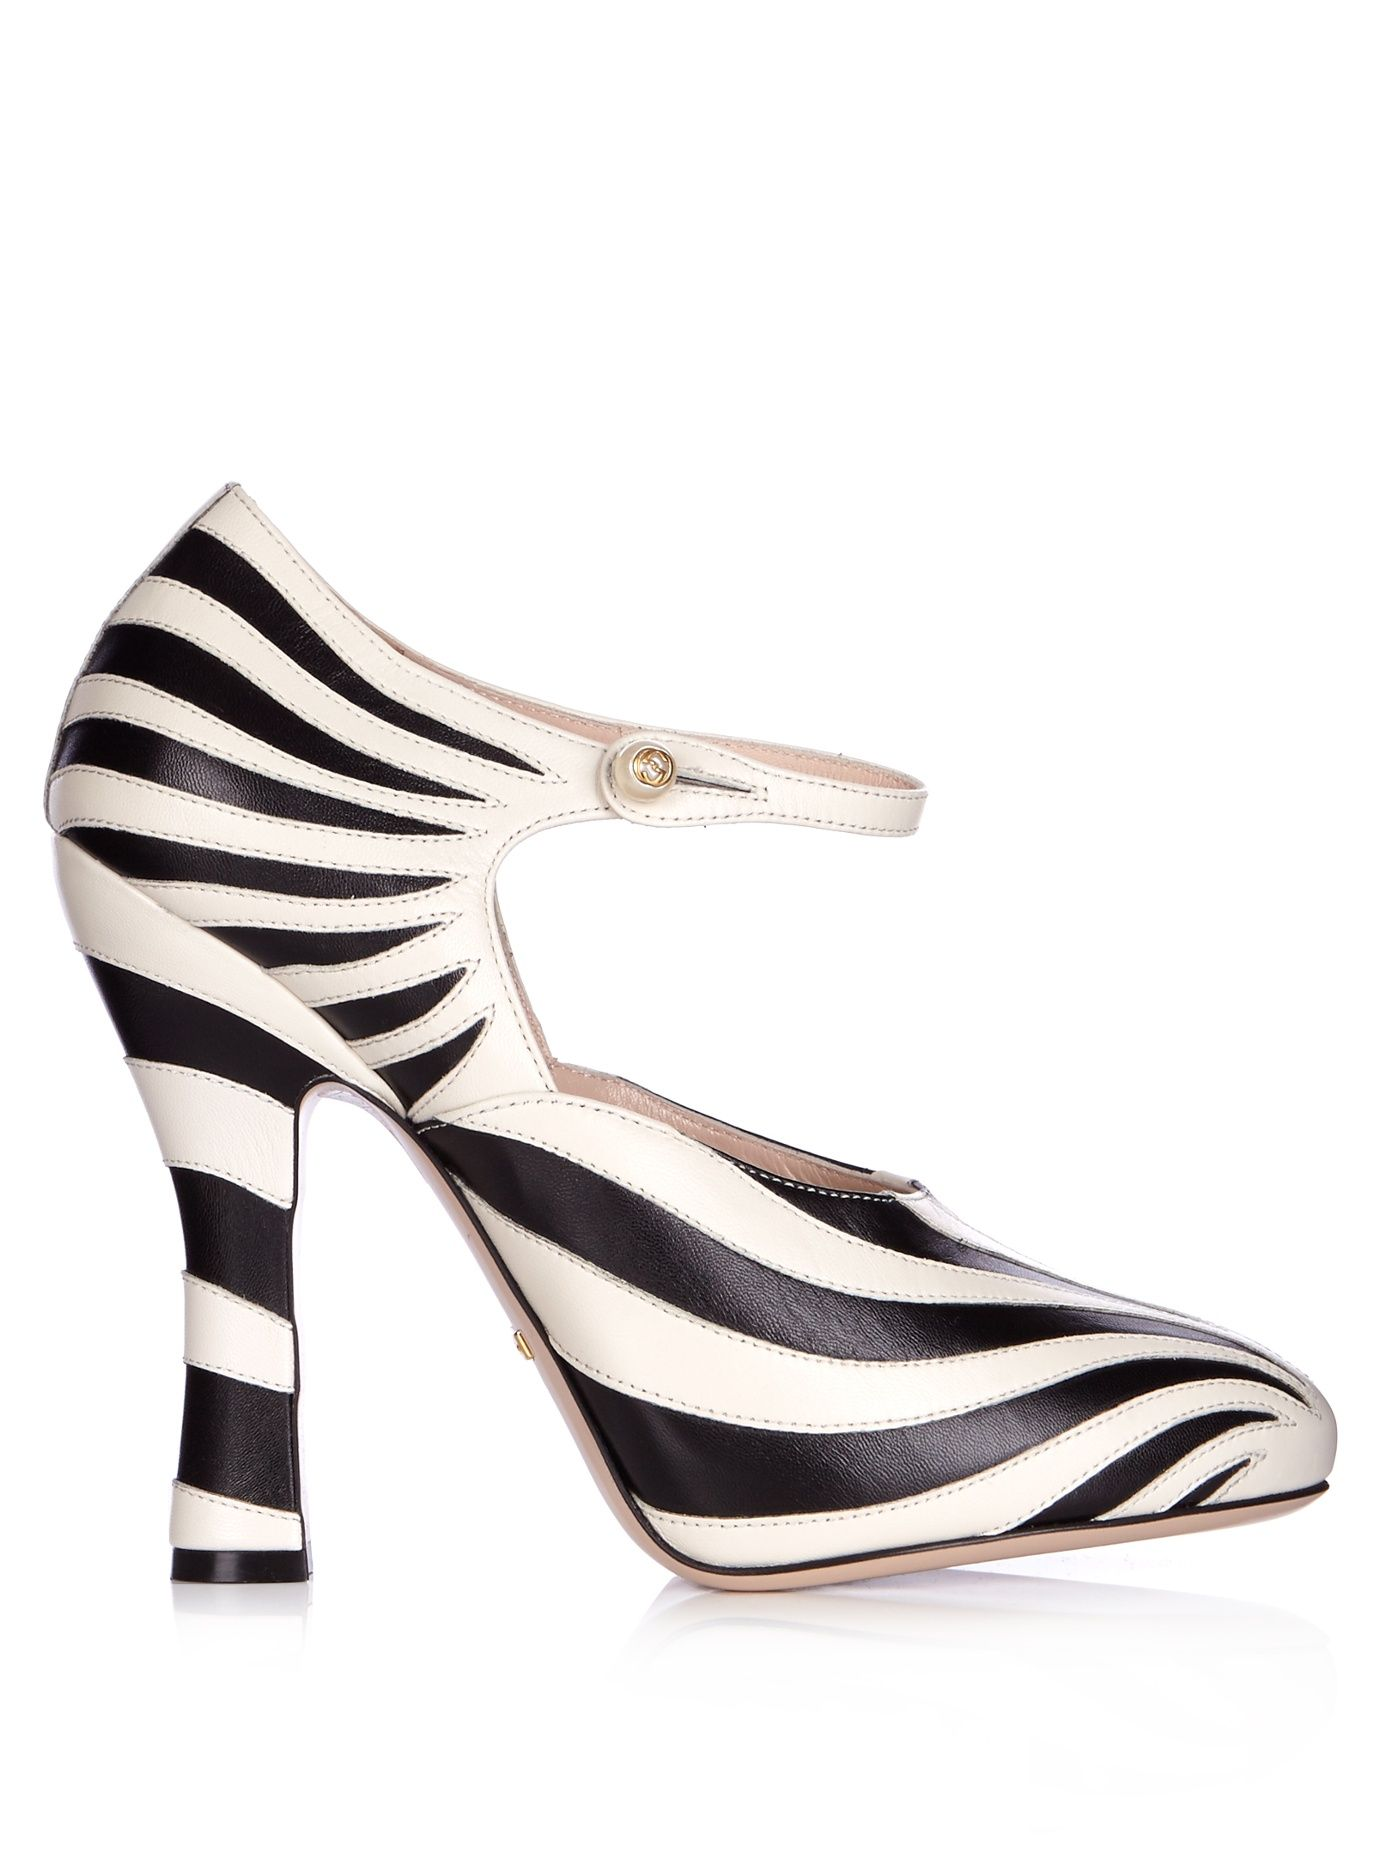 8e40c1870 Click here to buy Gucci Lesley zebra-appliqué leather pumps at  MATCHESFASHION.COM